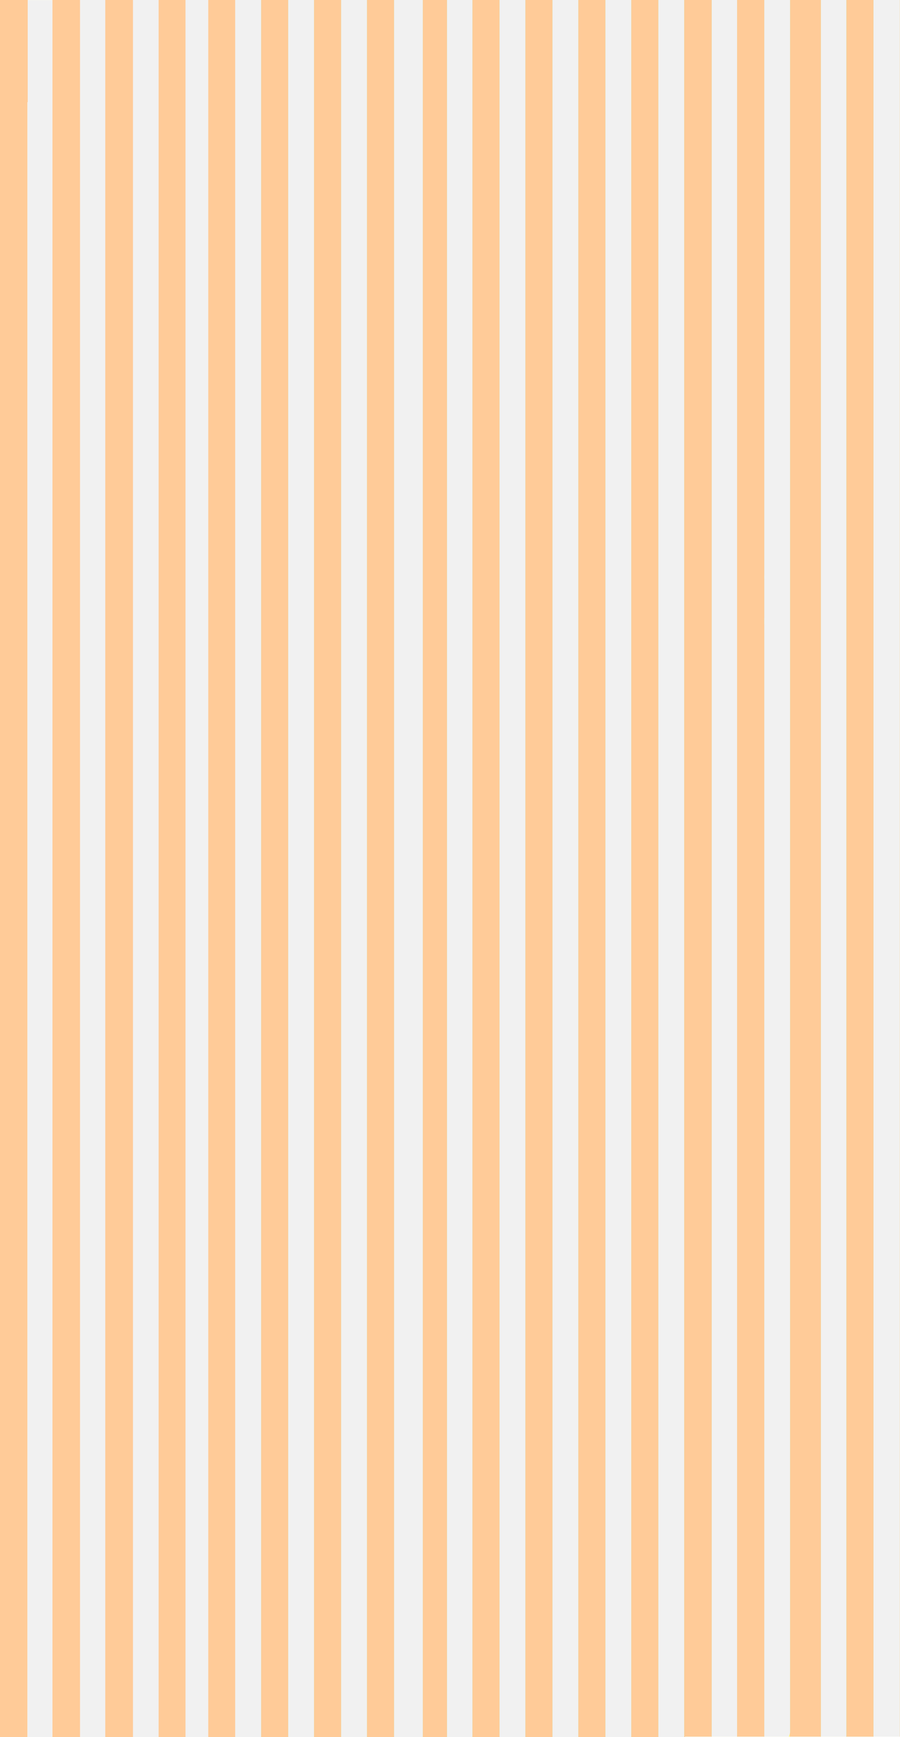 4 Pastel Orange Custom Box Background By Bgs And Bannersdeviantart On DeviantART